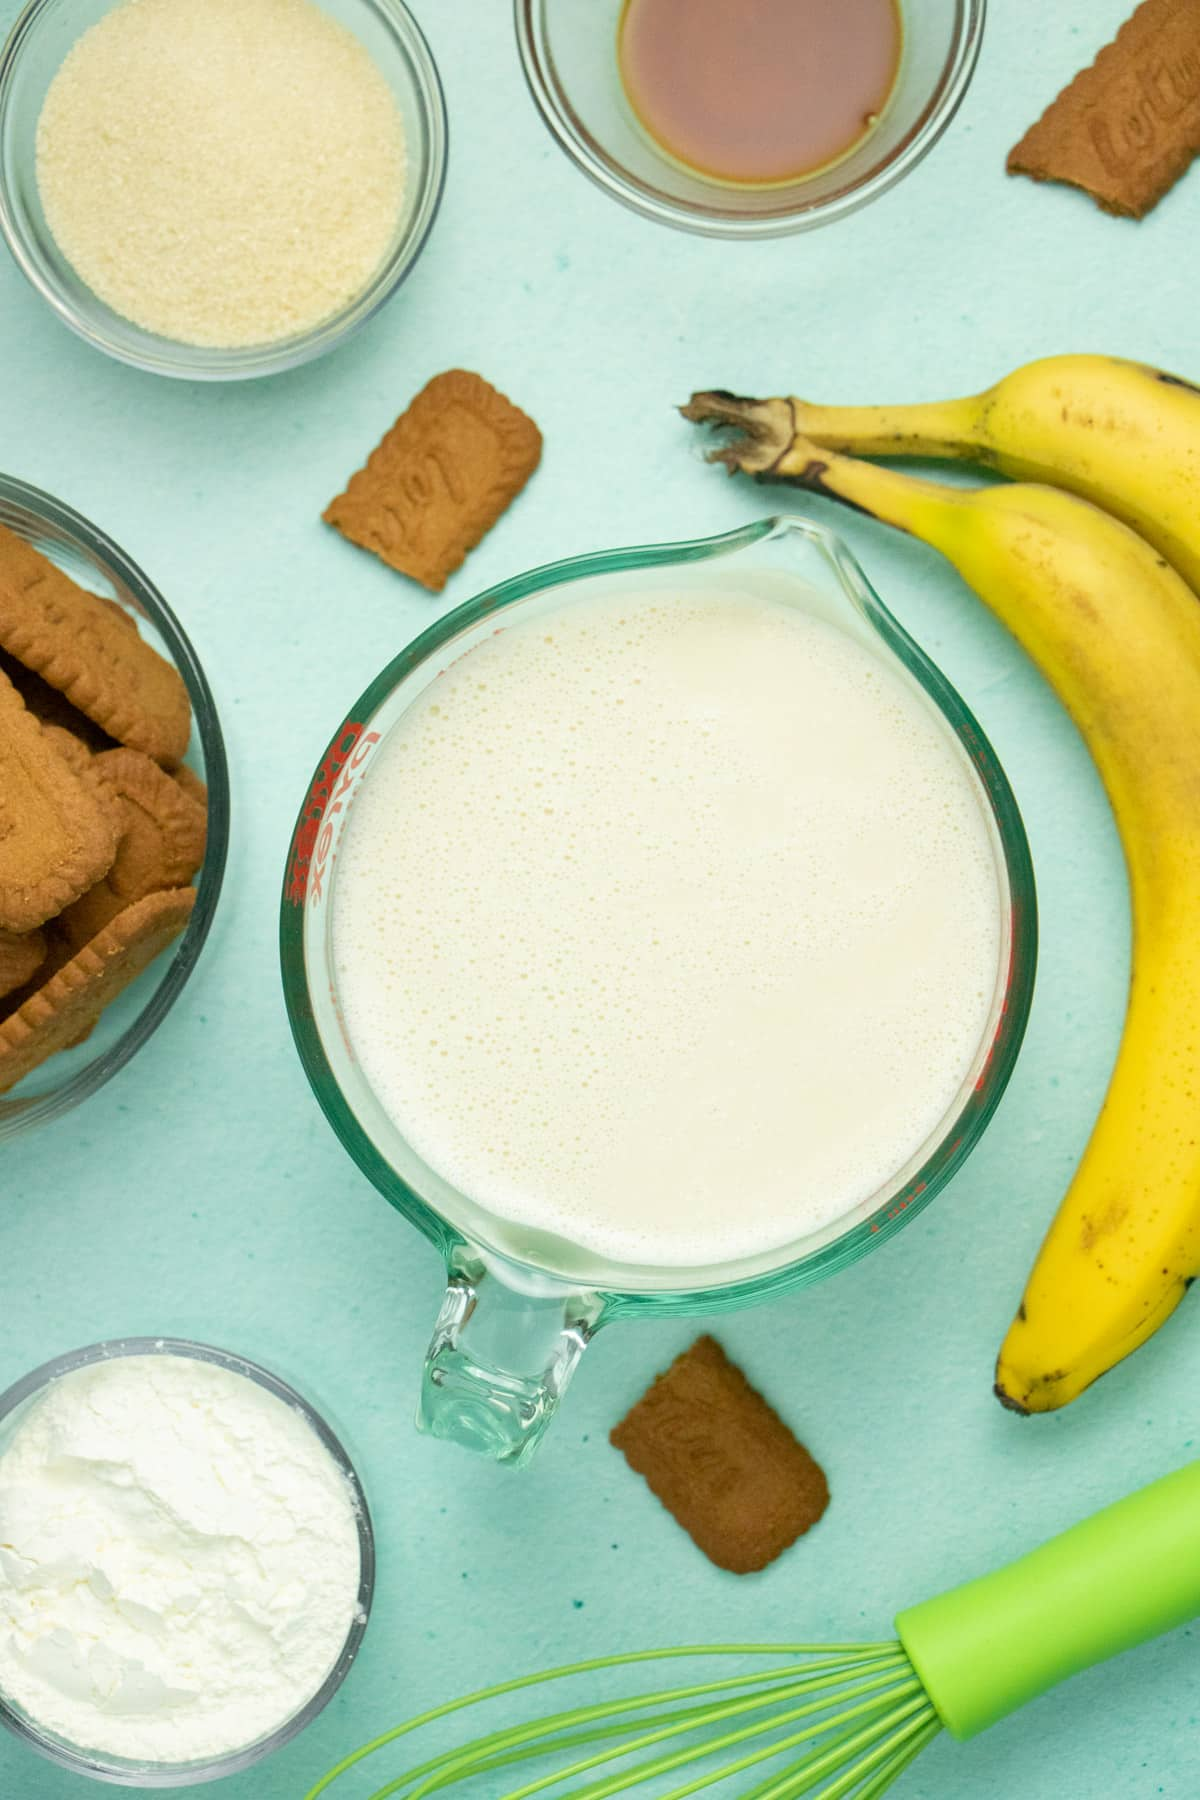 blue table with measuring bowls of oat milk, cornstarch, sugar, and vanilla next to bananas and Biscoff cookies